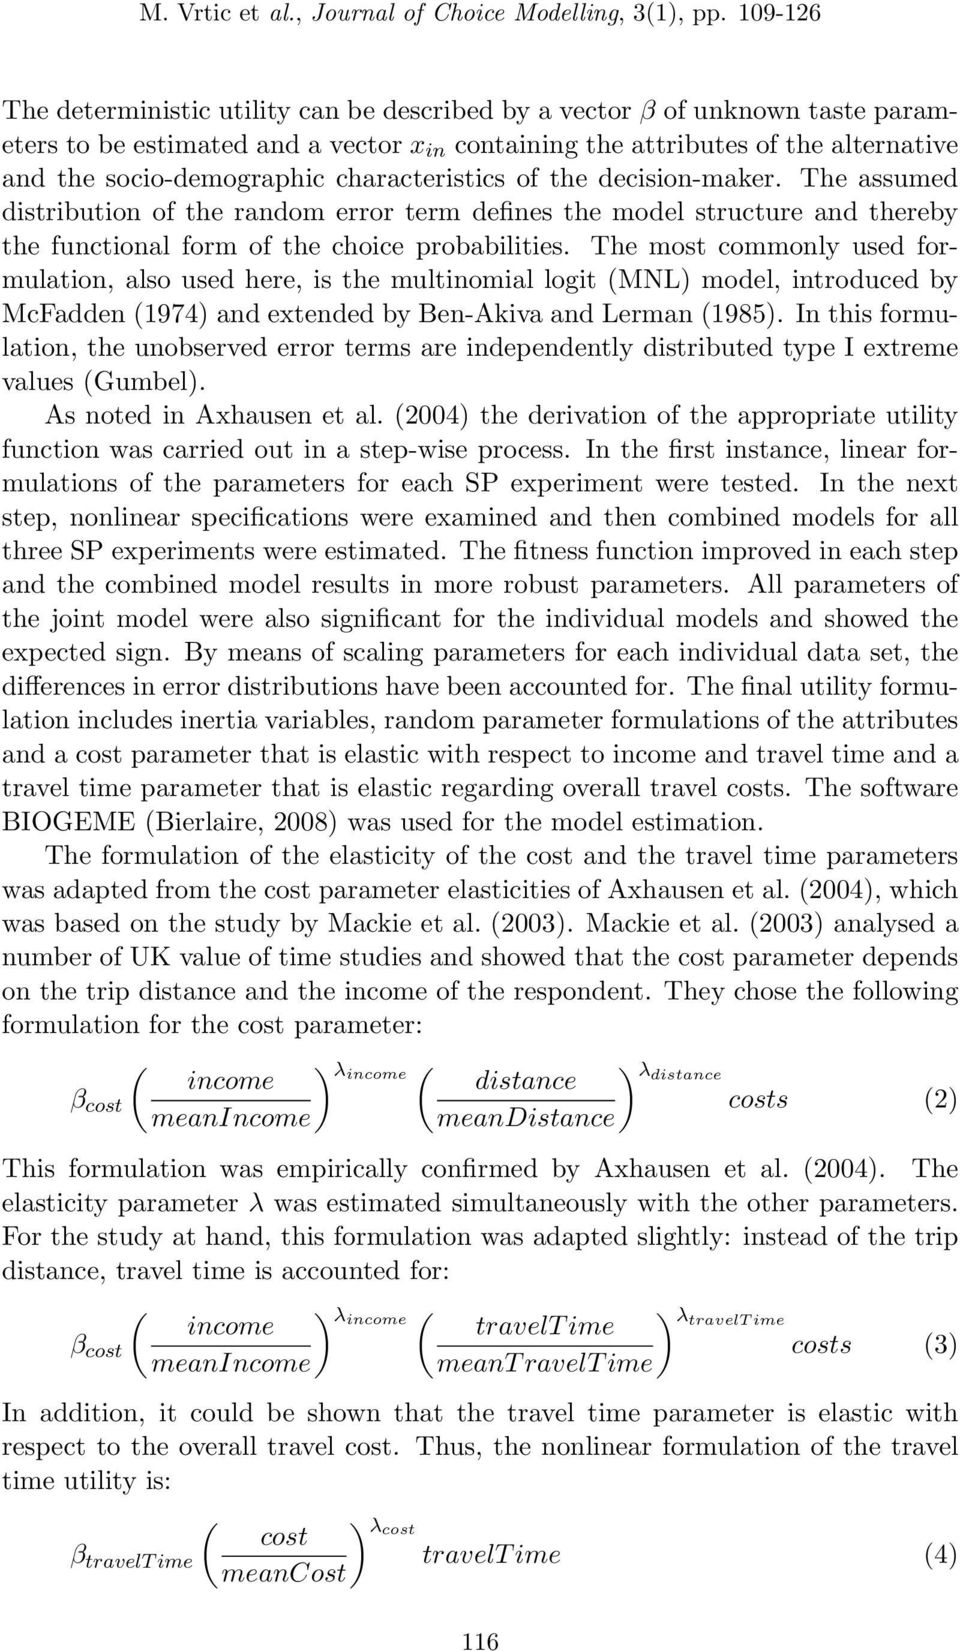 The most commonly used formulation, also used here, is the multinomial logit (MNL) model, introduced by McFadden (1974) and extended by Ben-Akiva and Lerman (1985).